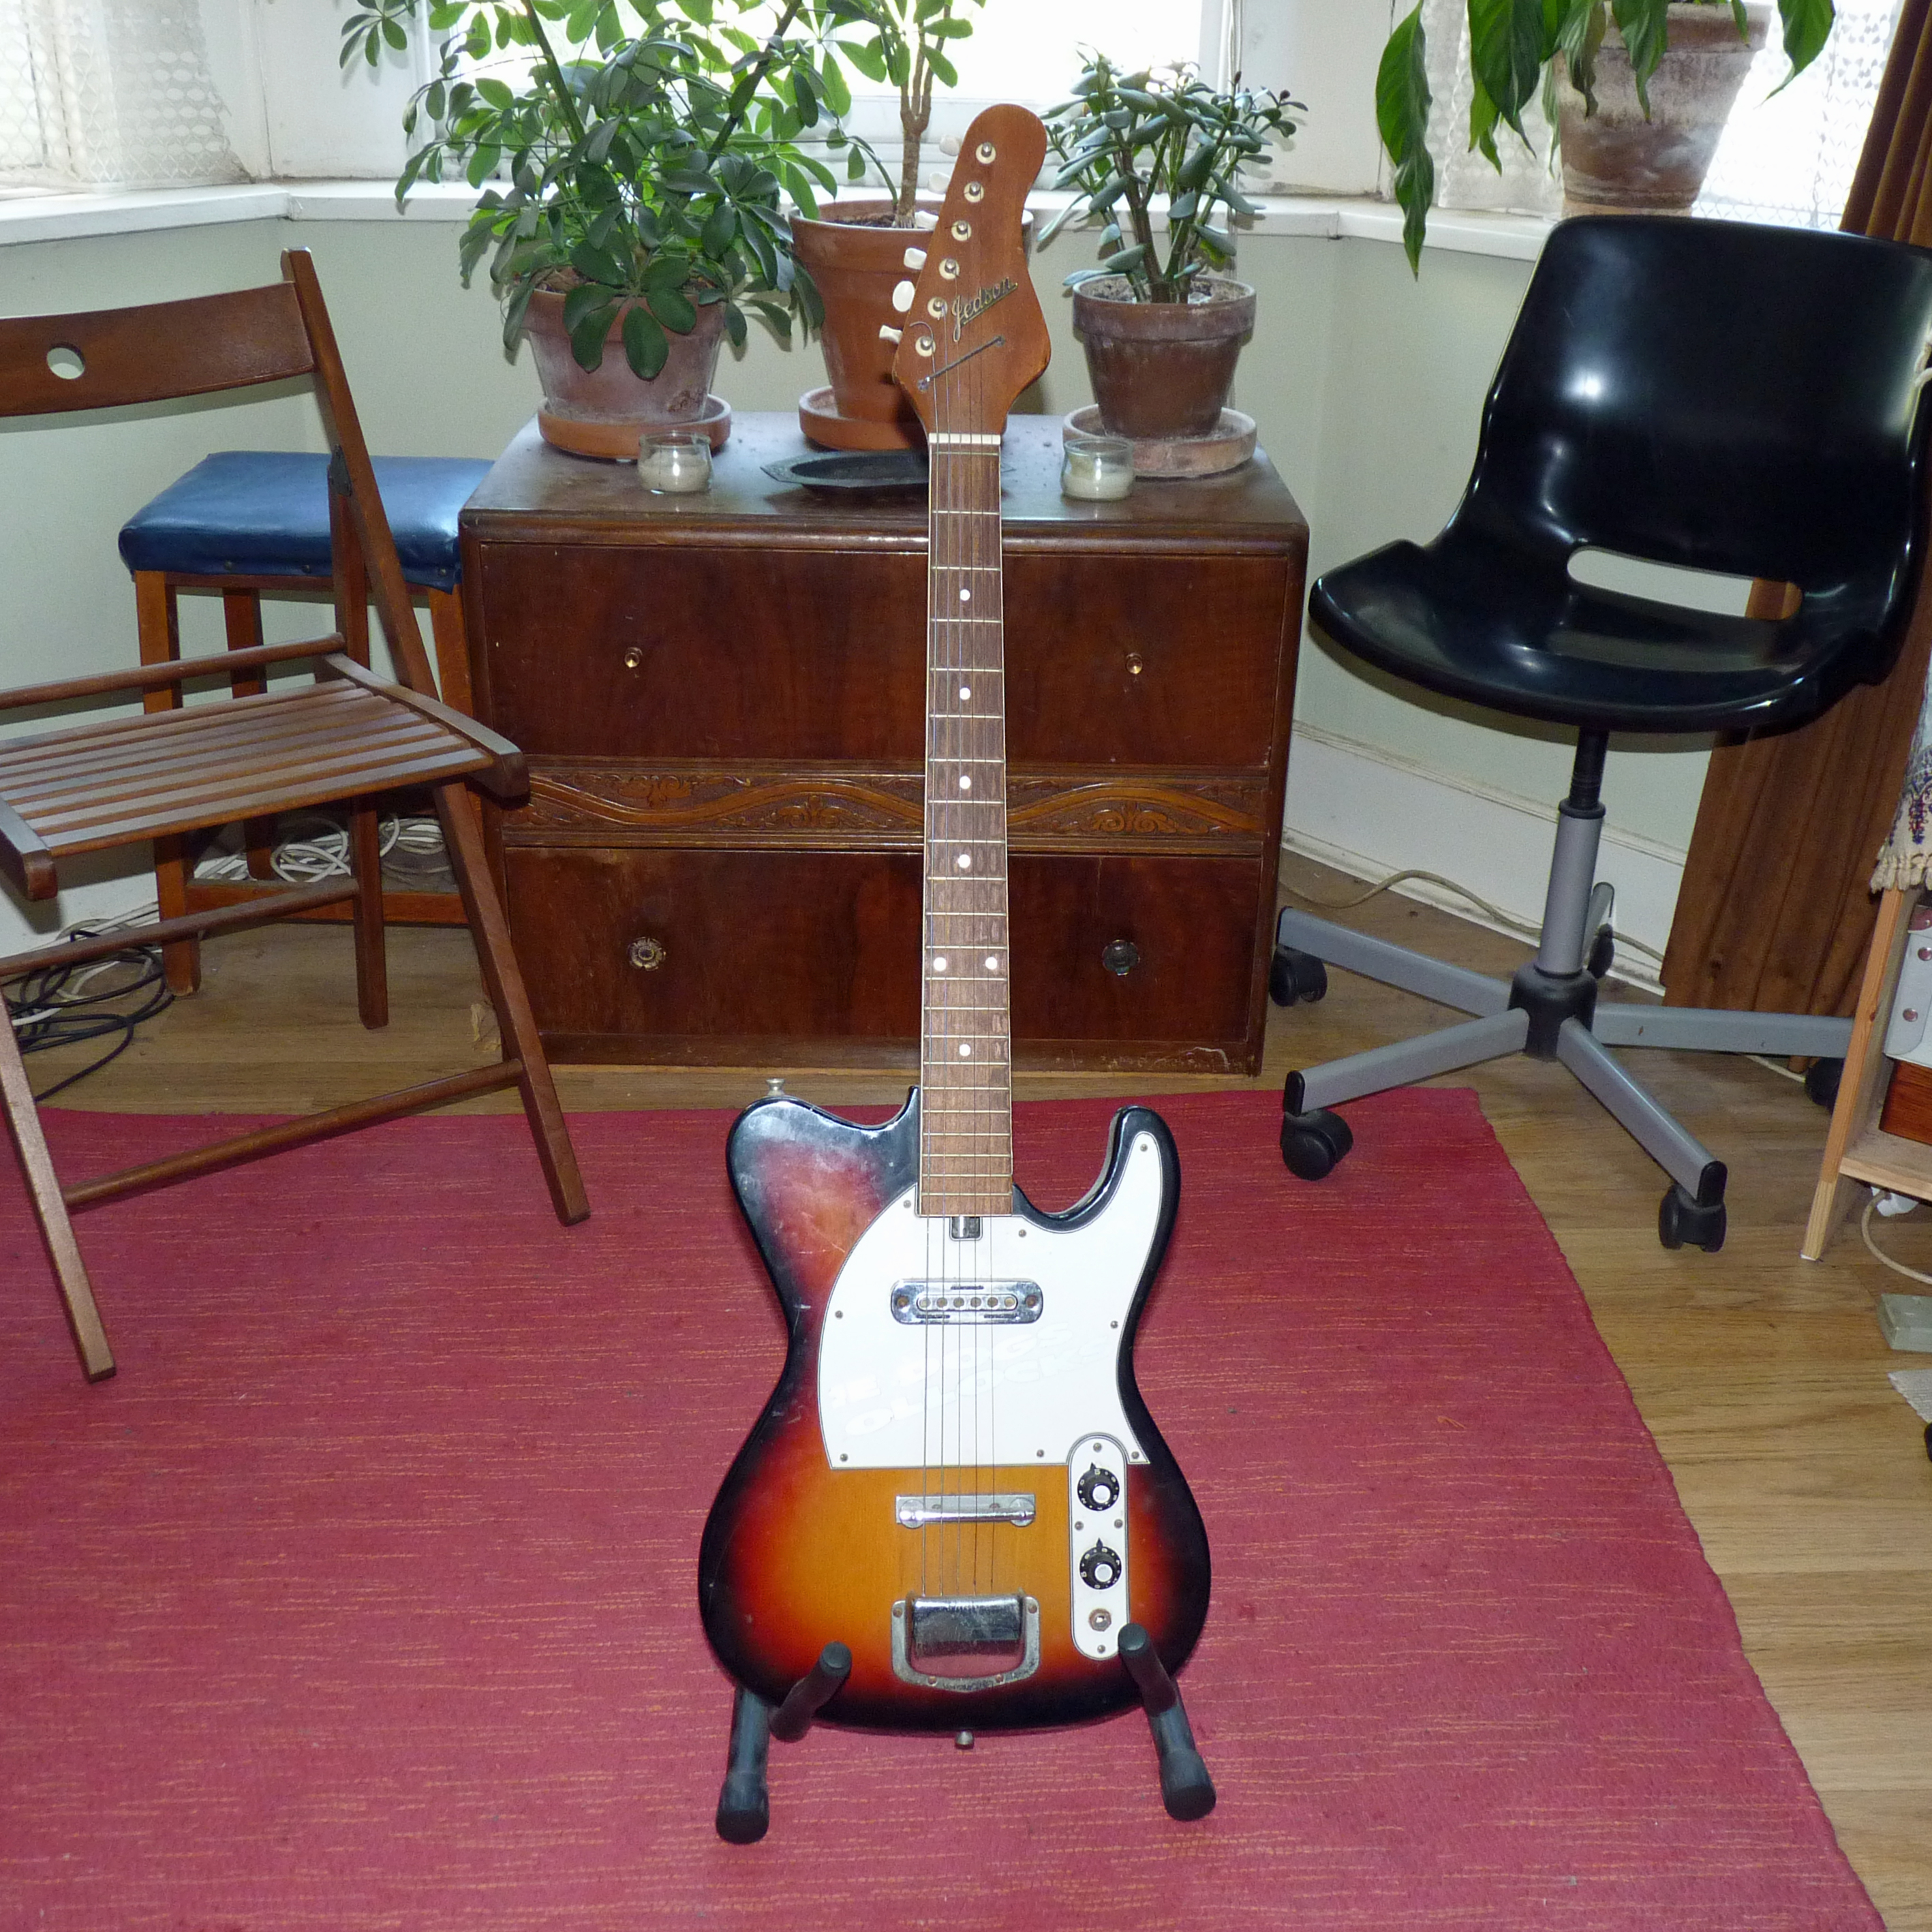 jedson tele style guitar from the 70s guitar discussions on thefretboard. Black Bedroom Furniture Sets. Home Design Ideas